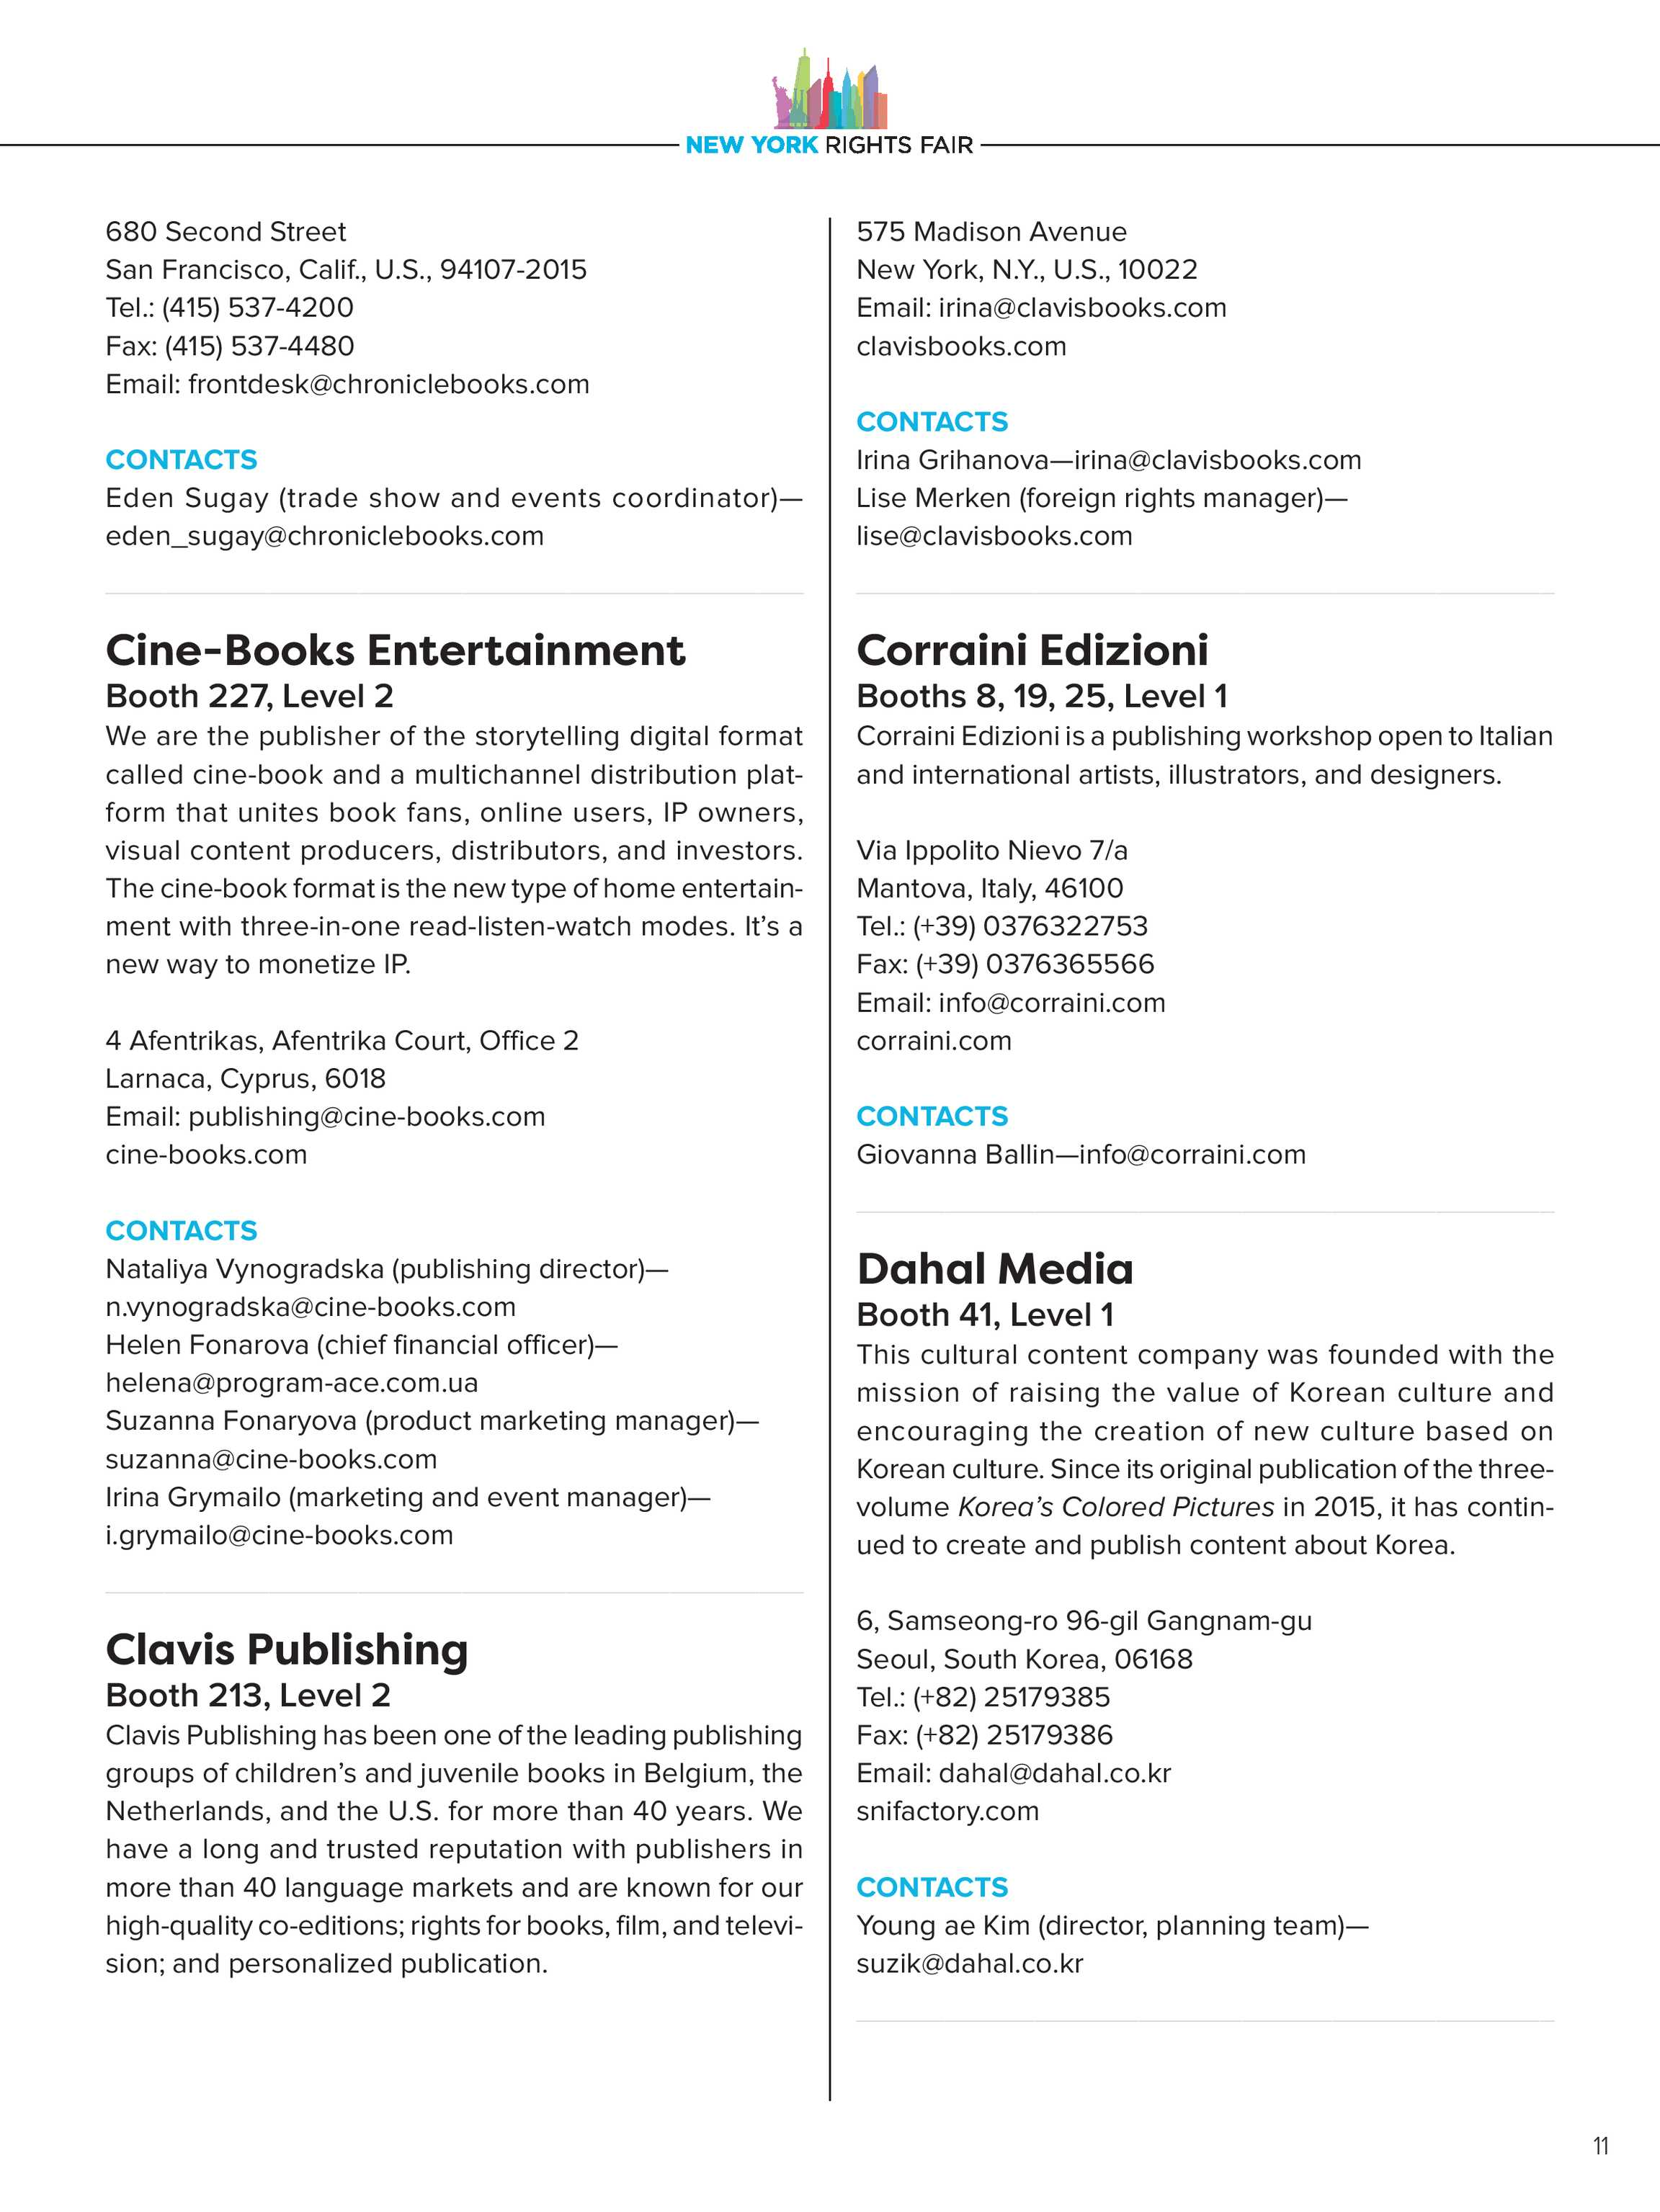 Publishers Weekly - NYRF Directory - page 11